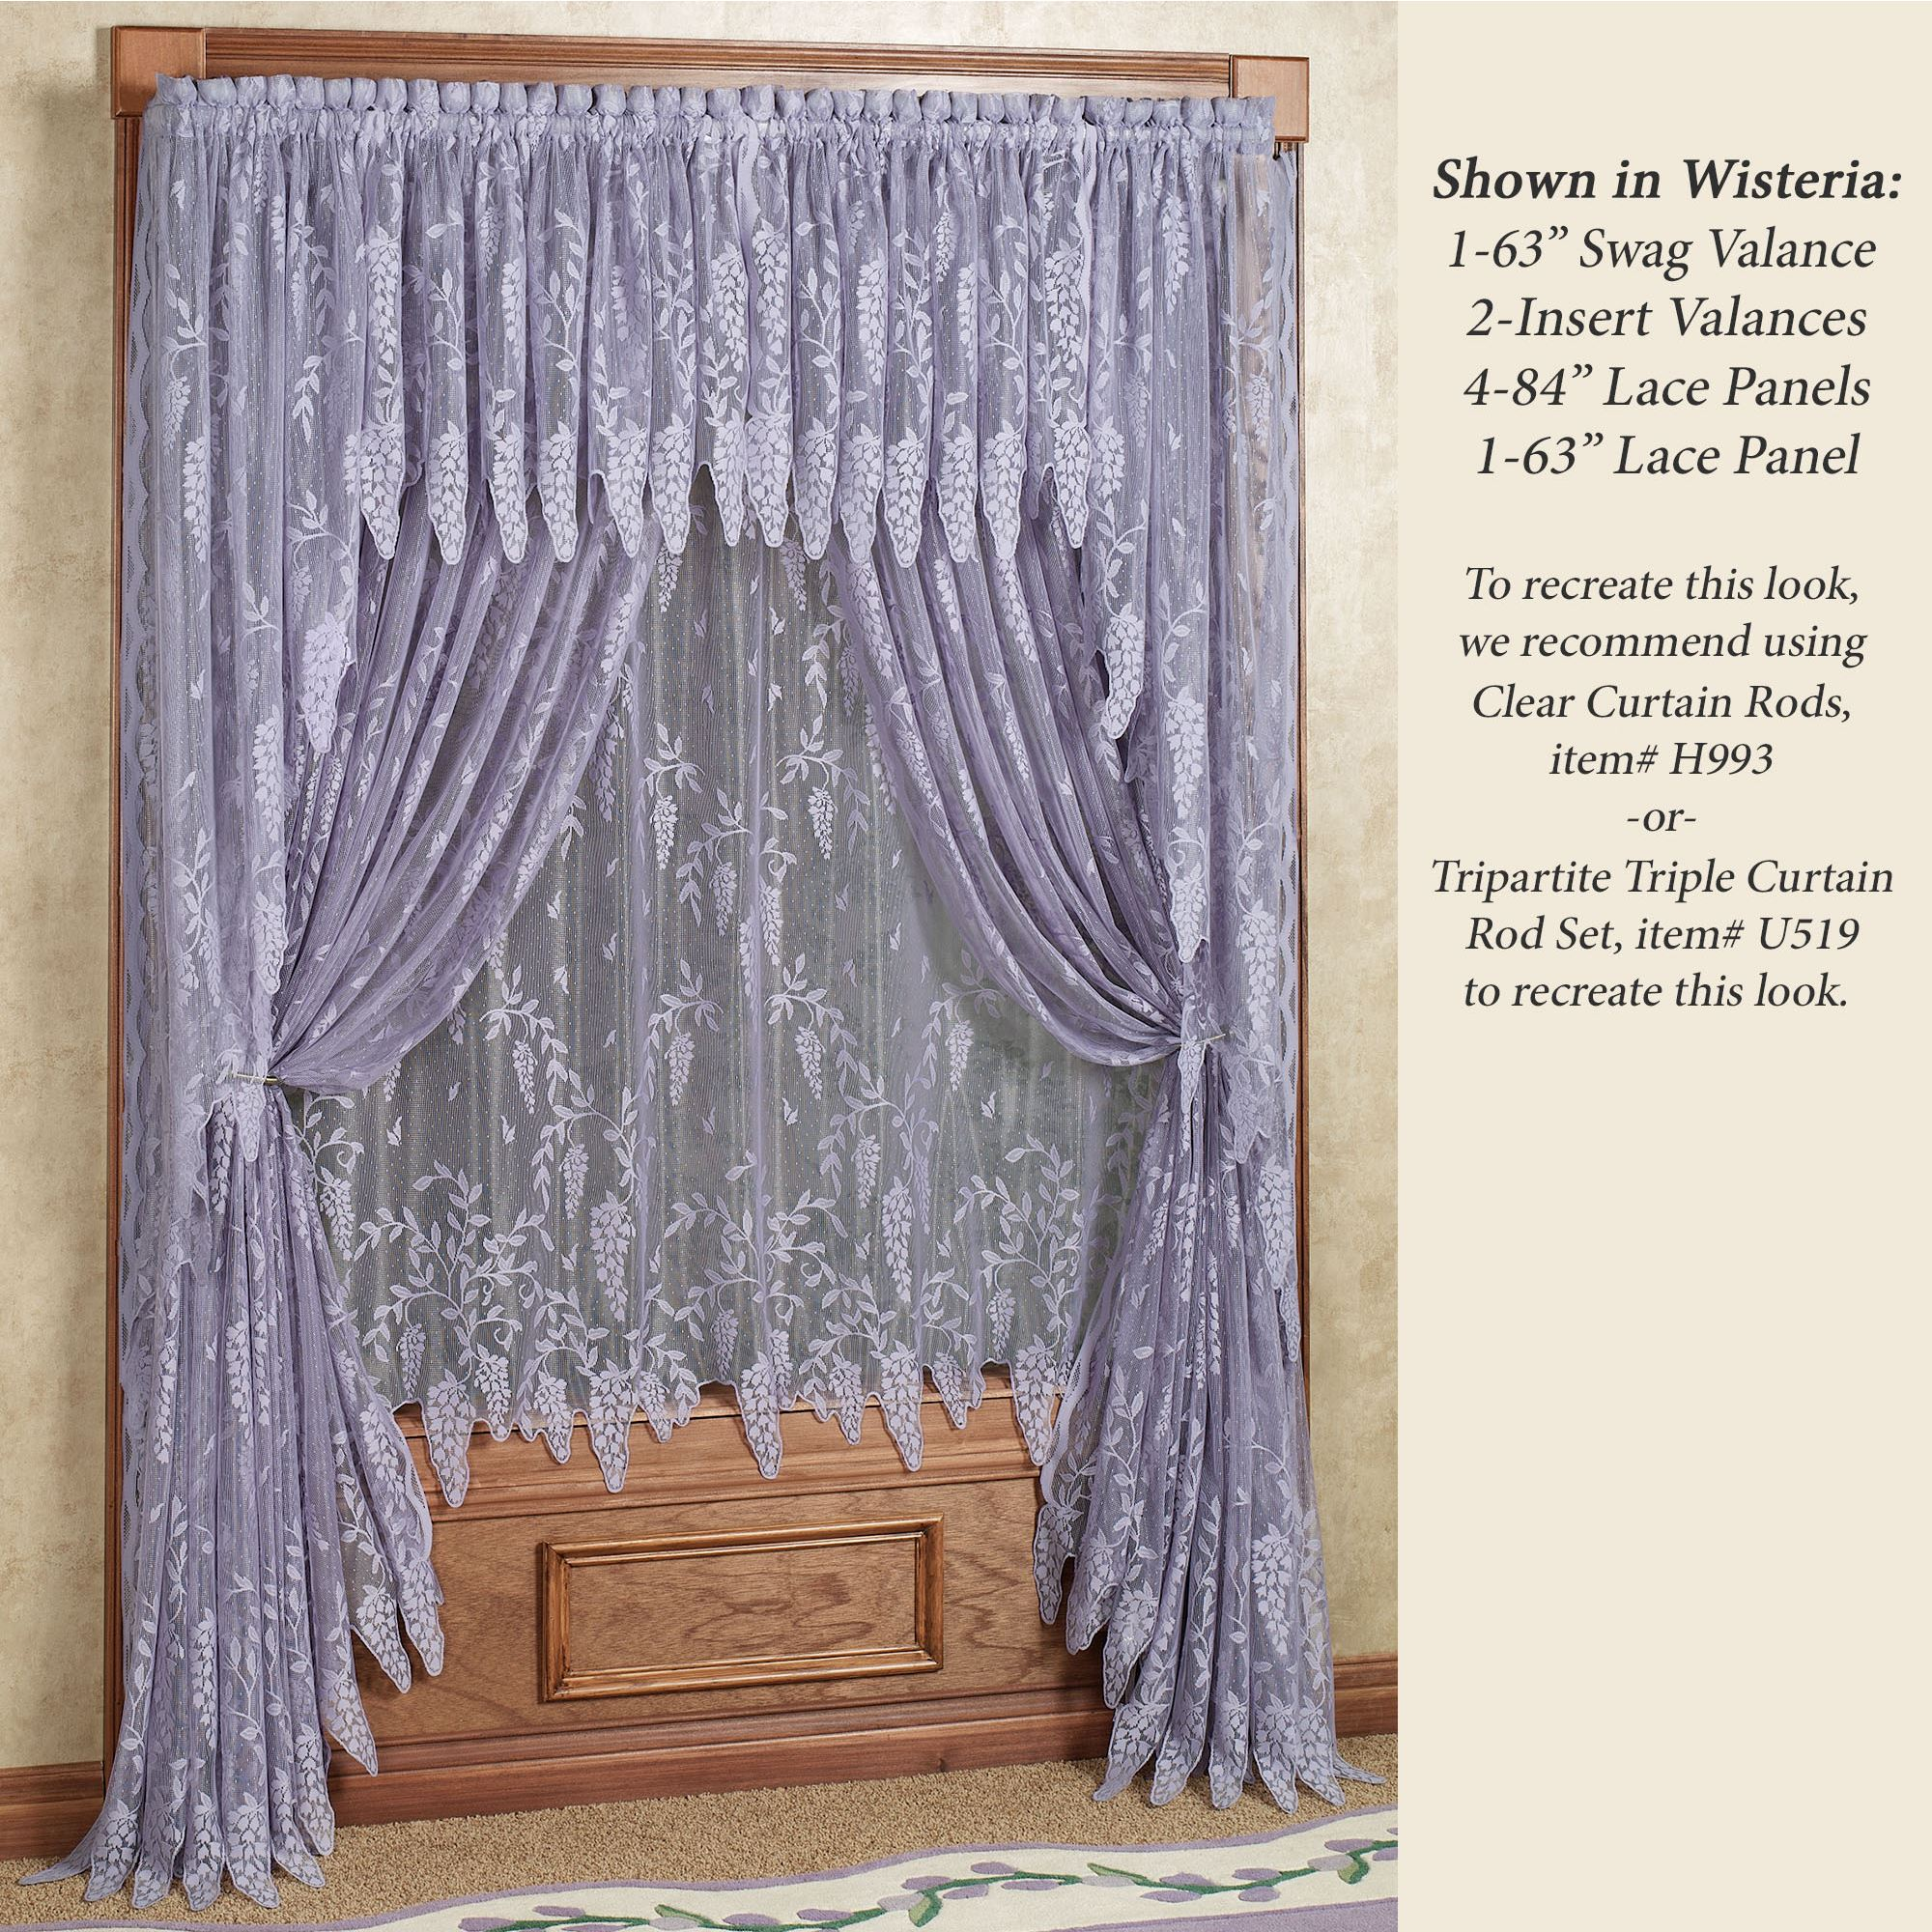 imposing ivory compelling for windows tags mode curtain astor tailored tag panel memorable lace modern fearsome beautiful panels curtains valances blinds window and red valance dazzle